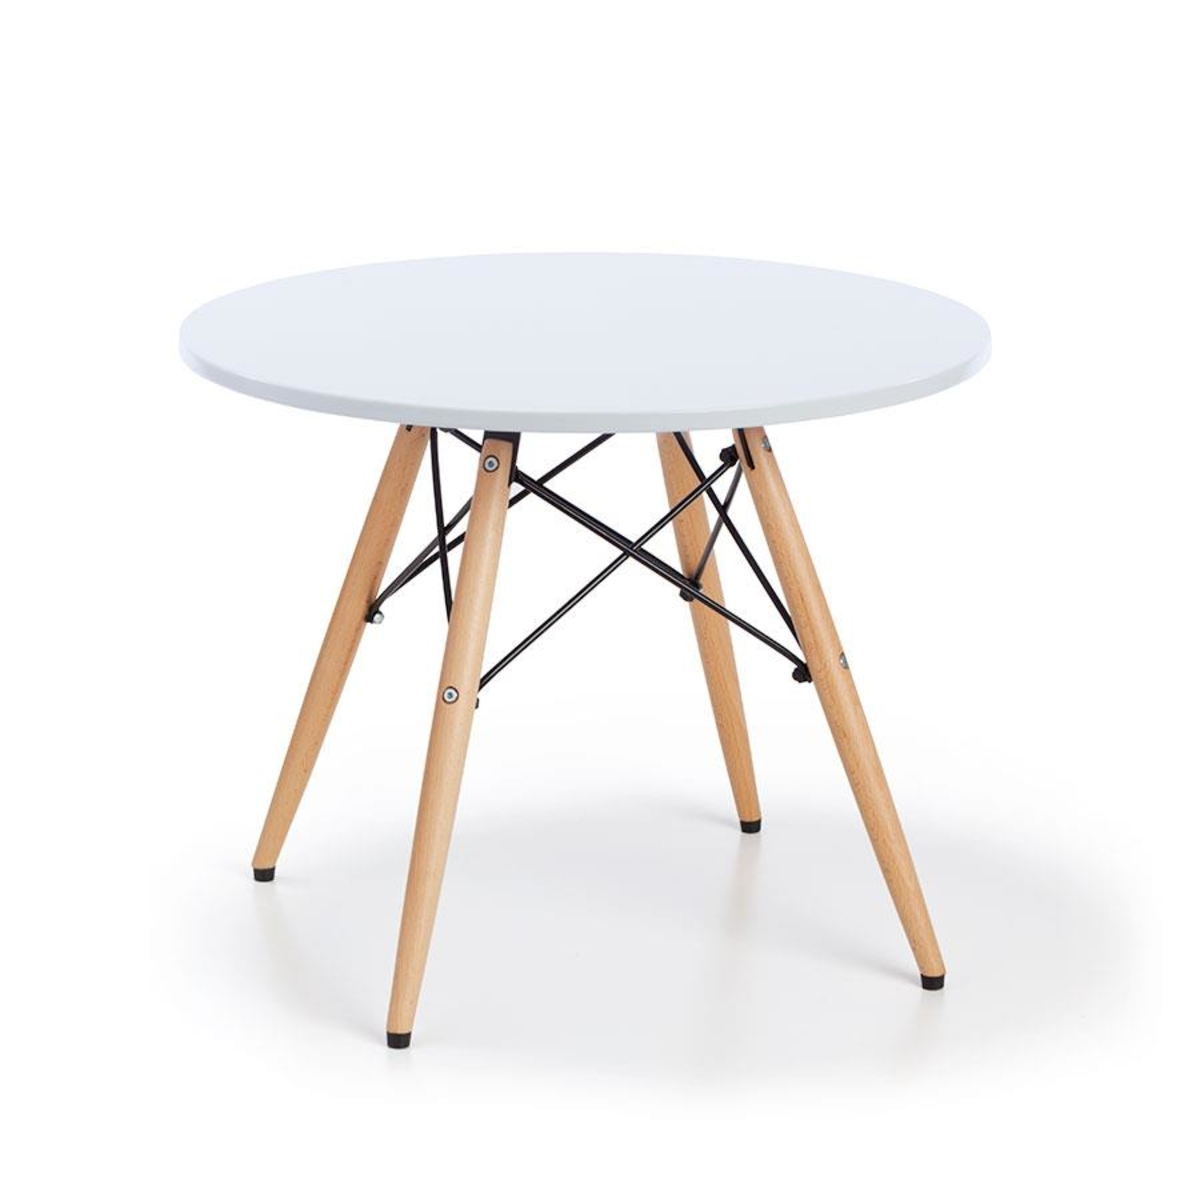 Infant Table And Chairs Round Table Kmart